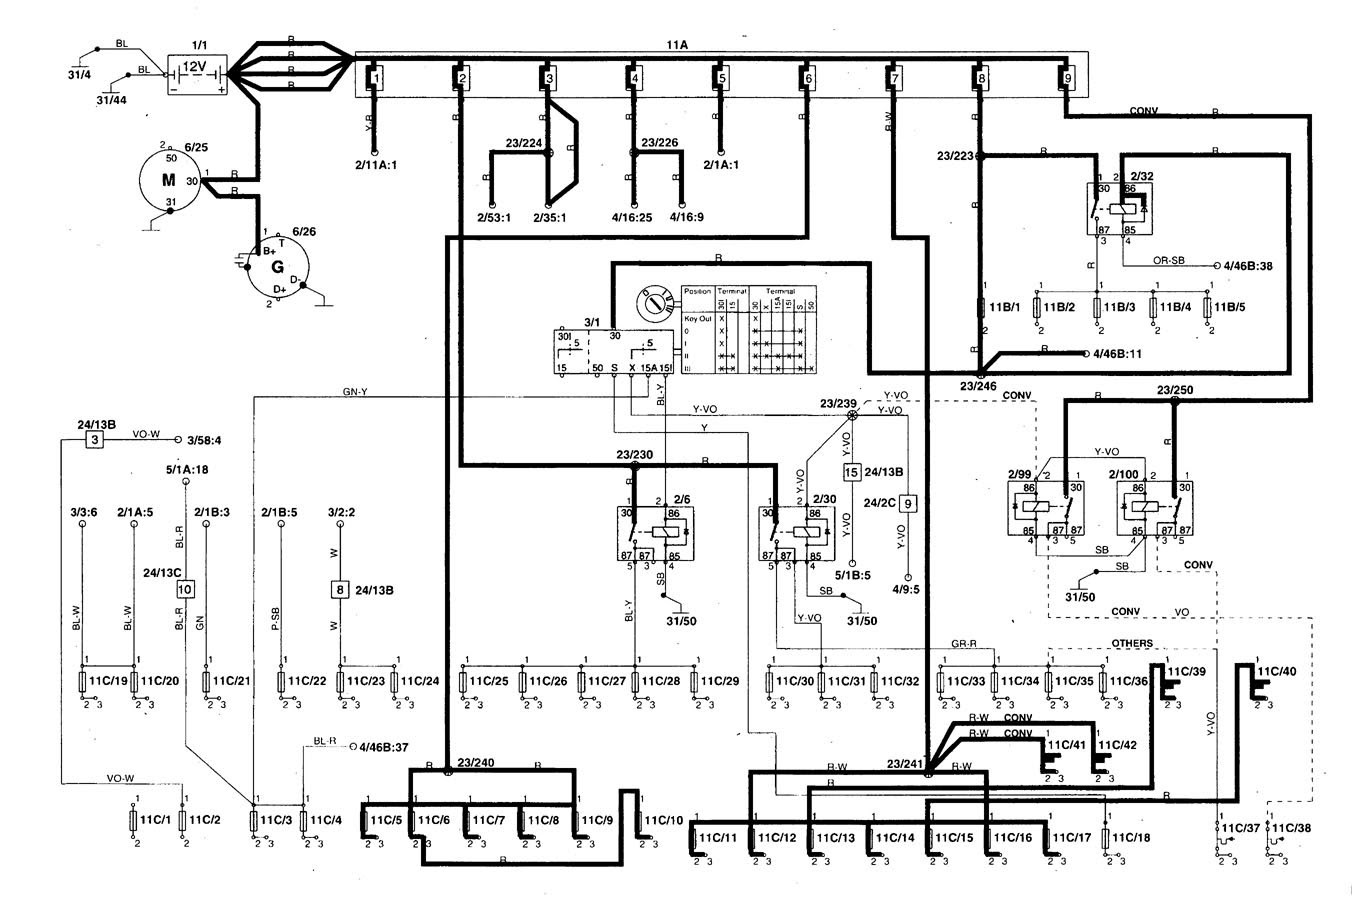 diagram] volvo s70 v70 c70 1999 electrical wiring diagram manual instant  full version hd quality manual instant -  diagrammozeet.cera-professionale-lacera.it  cera professionale lacera